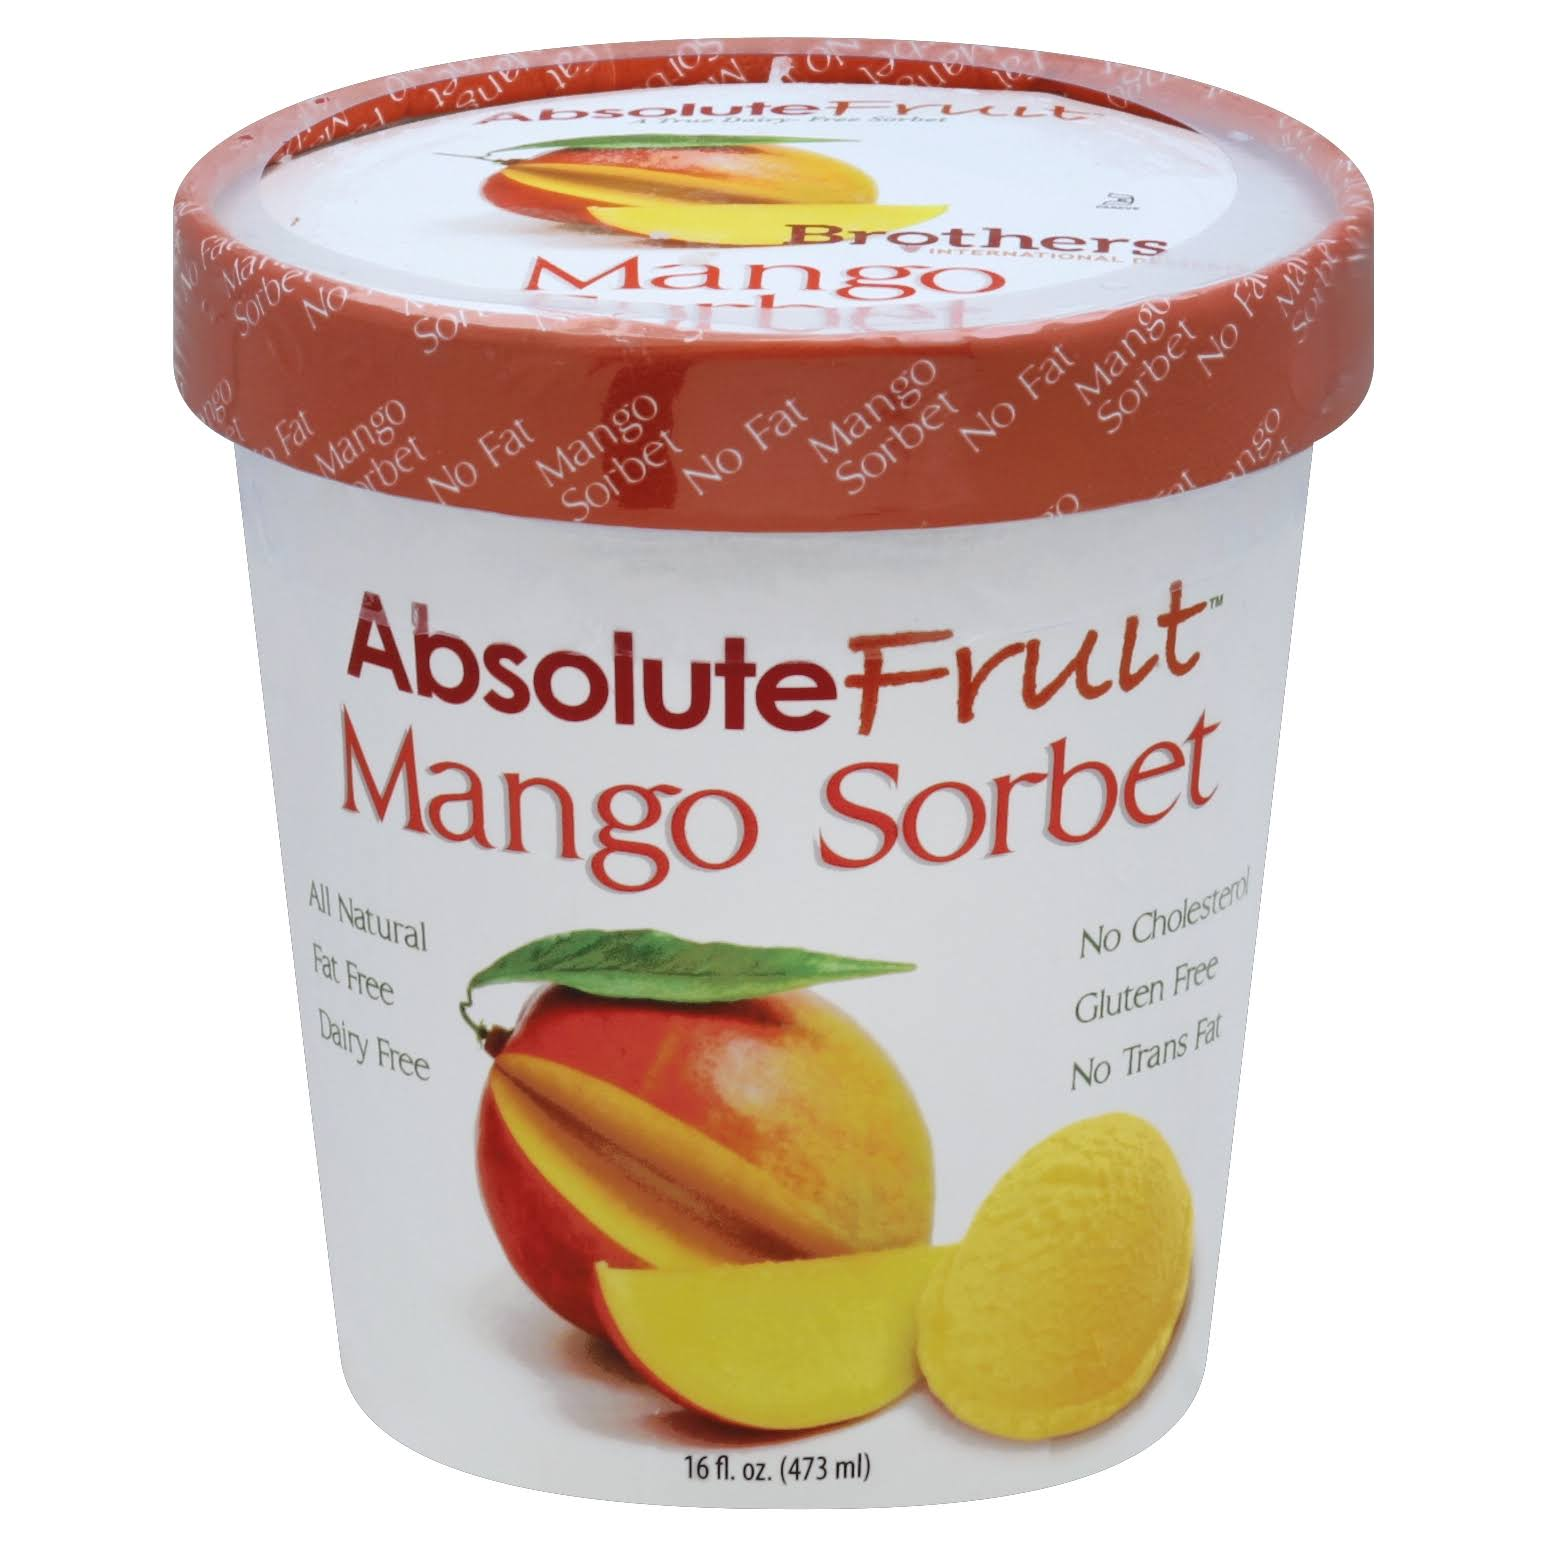 Absolute Fruit Sorbet, Mango - 16 fl oz